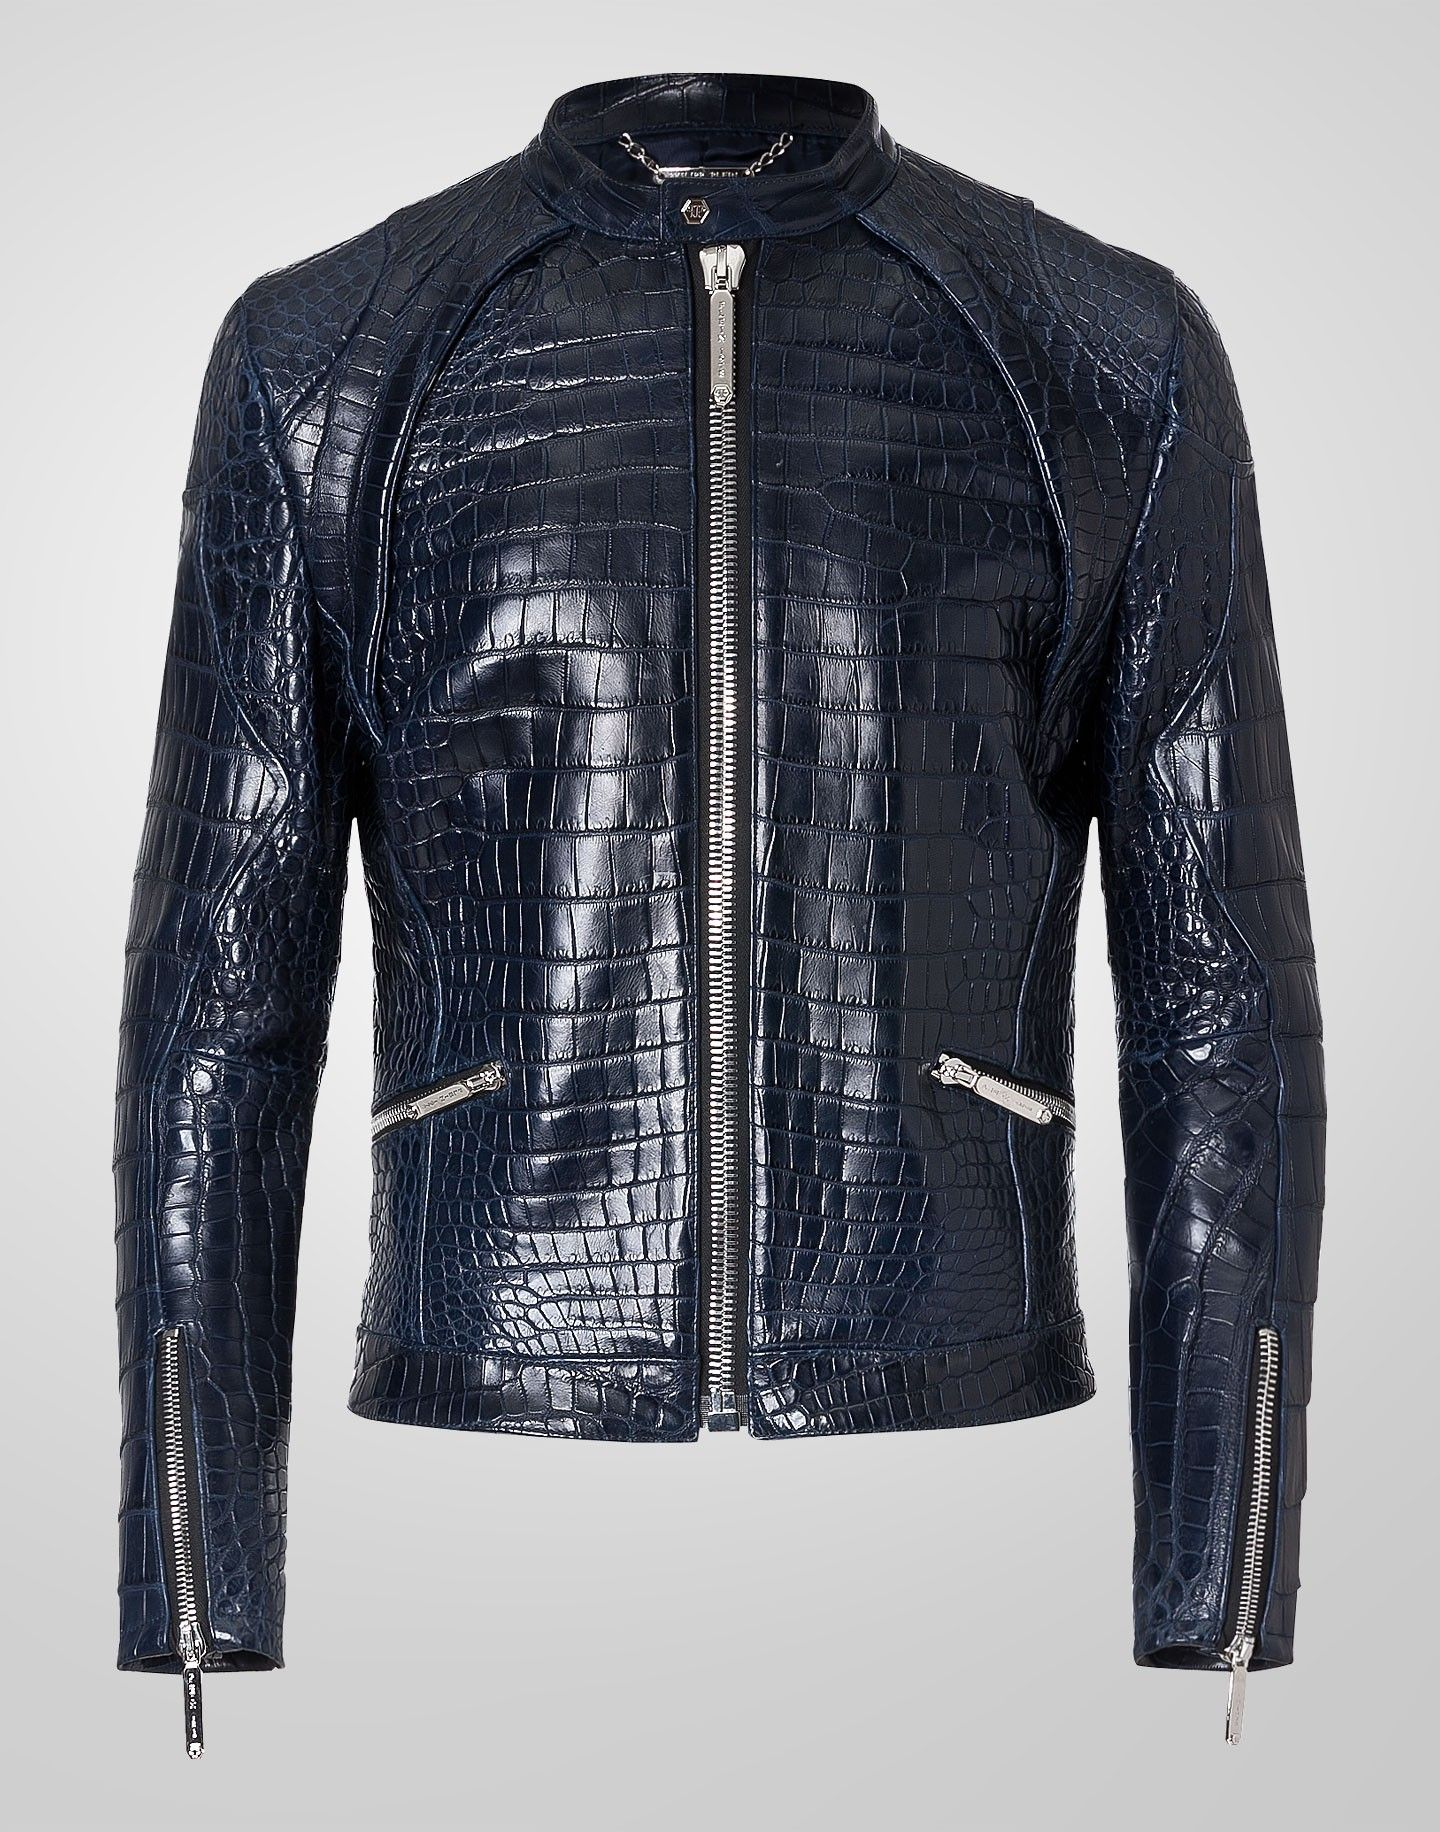 53a96e2093 PHILIPP PLEIN LEATHER JACKET